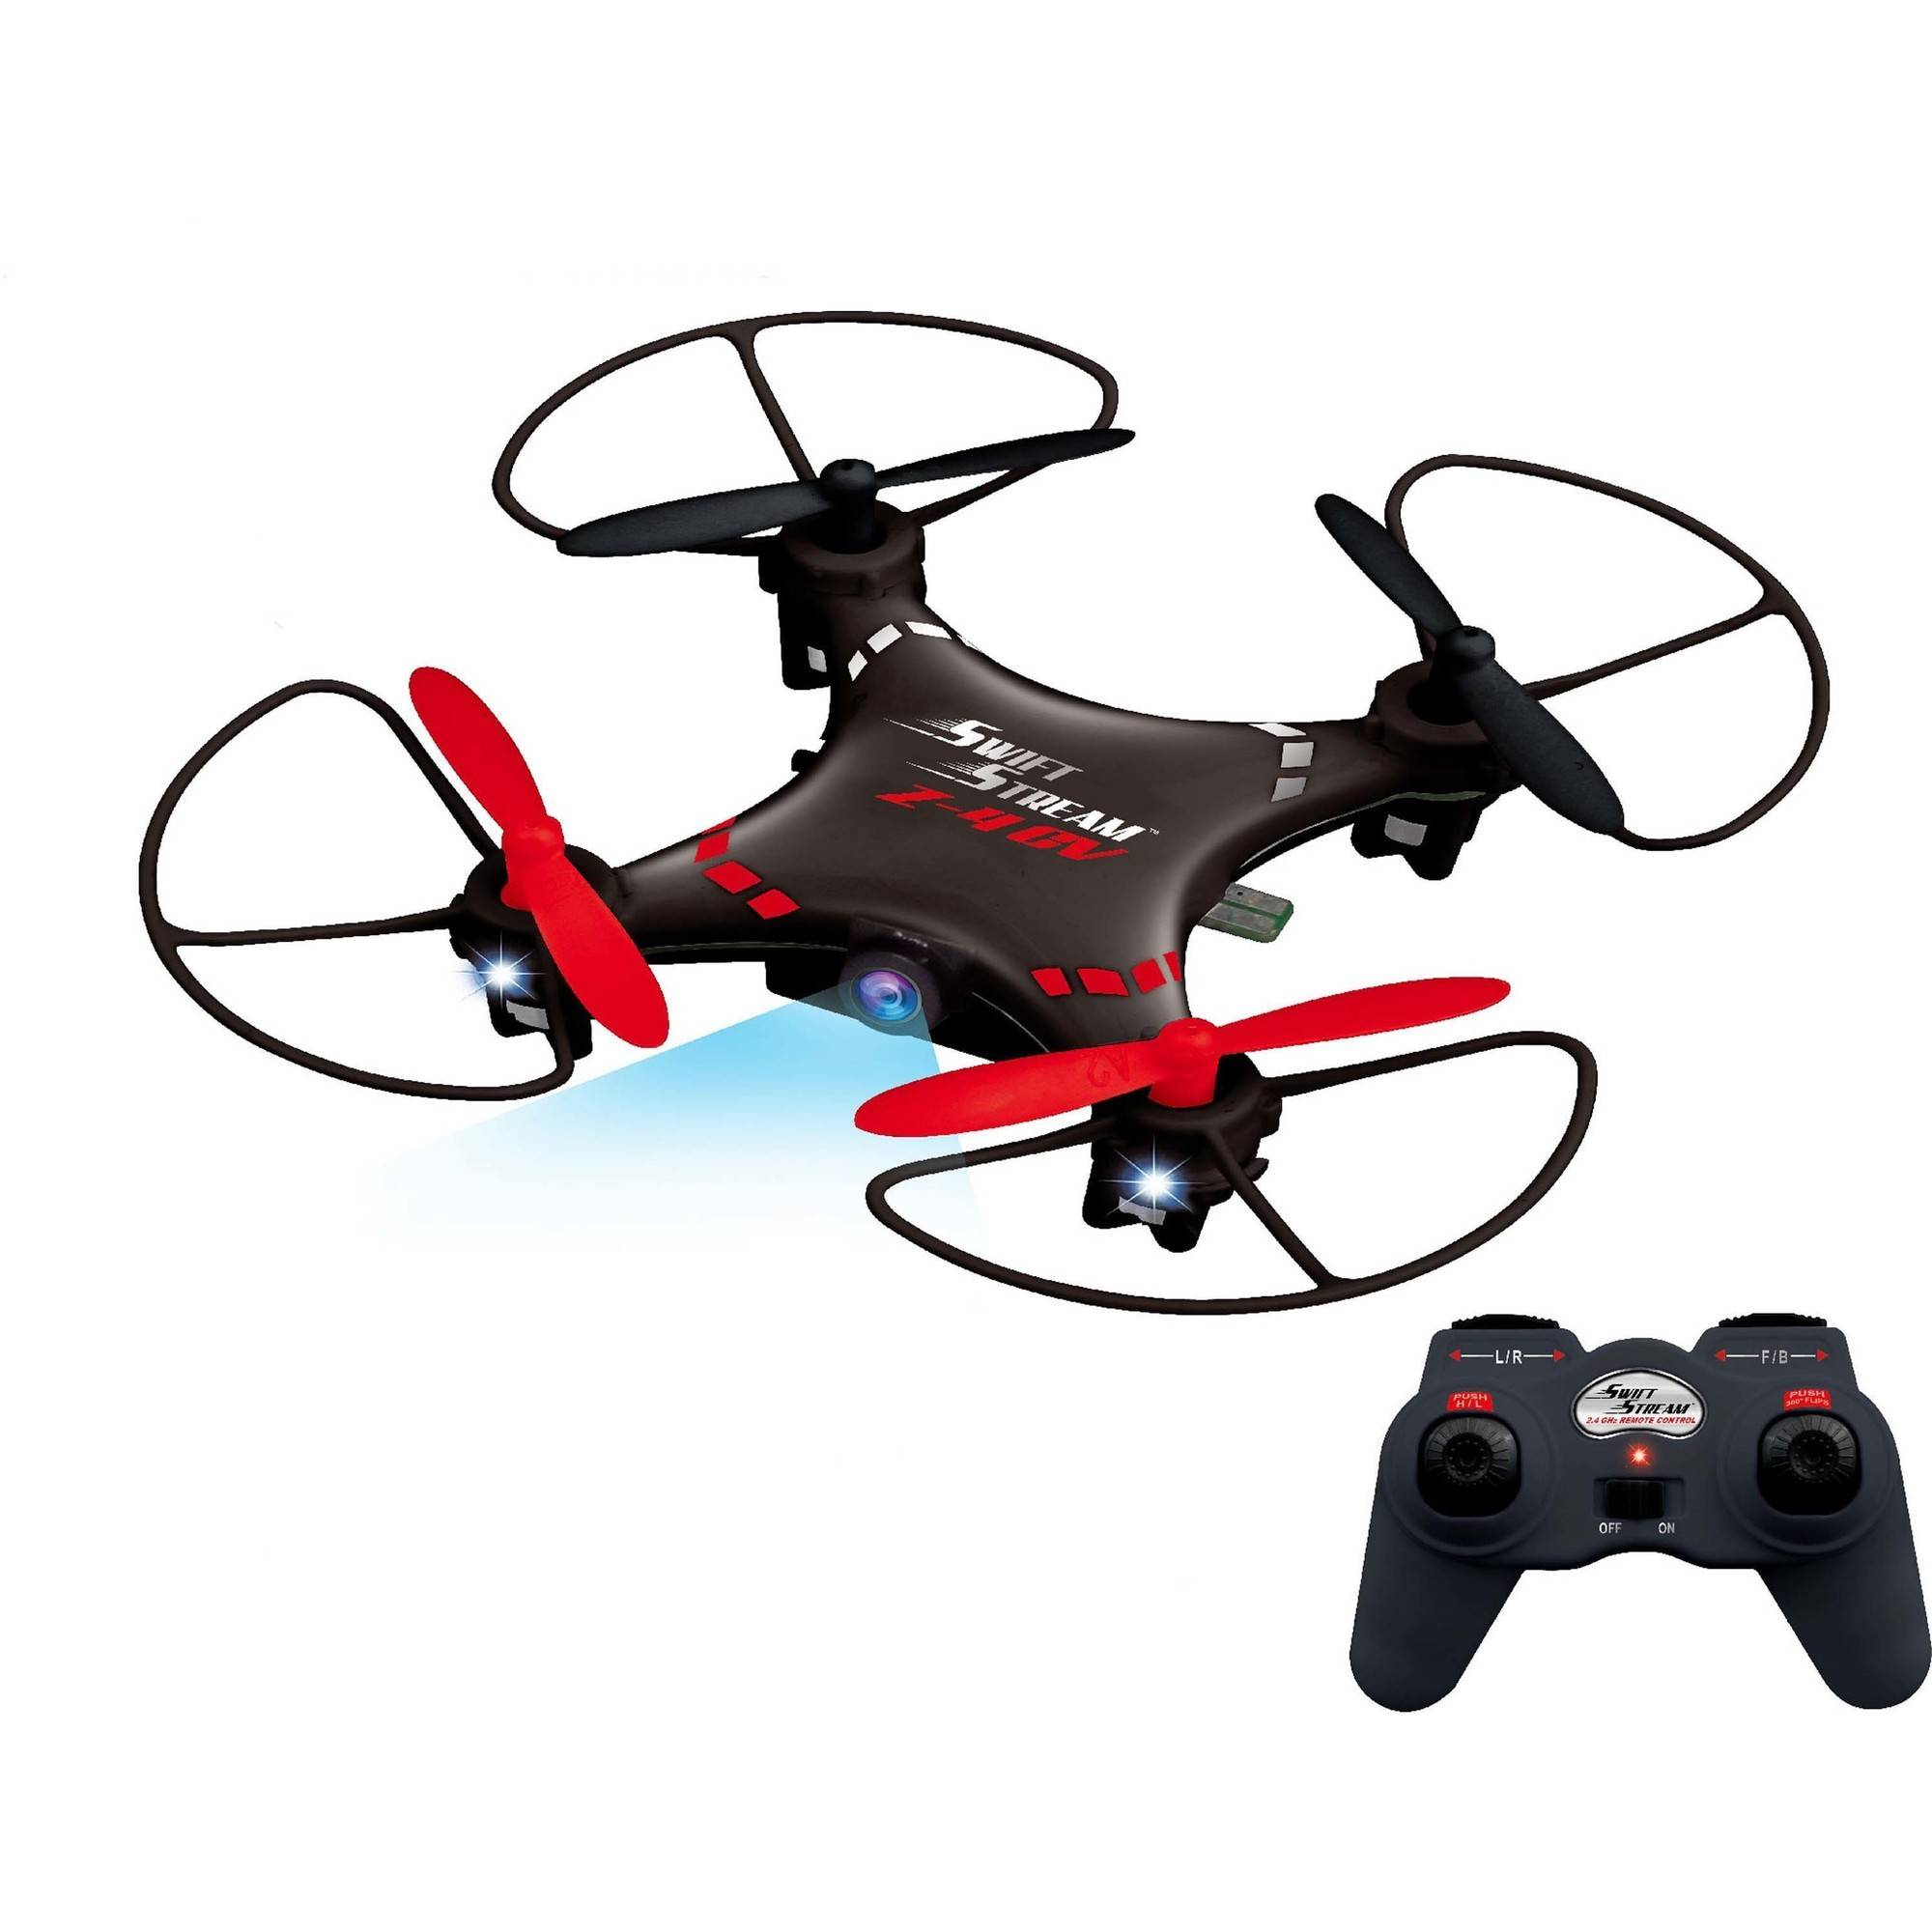 Swift Stream Z-4CV 4Hz 5-Channel RC Mini Drone with 6-Axis Gryo and 0.3MP Camera, Black